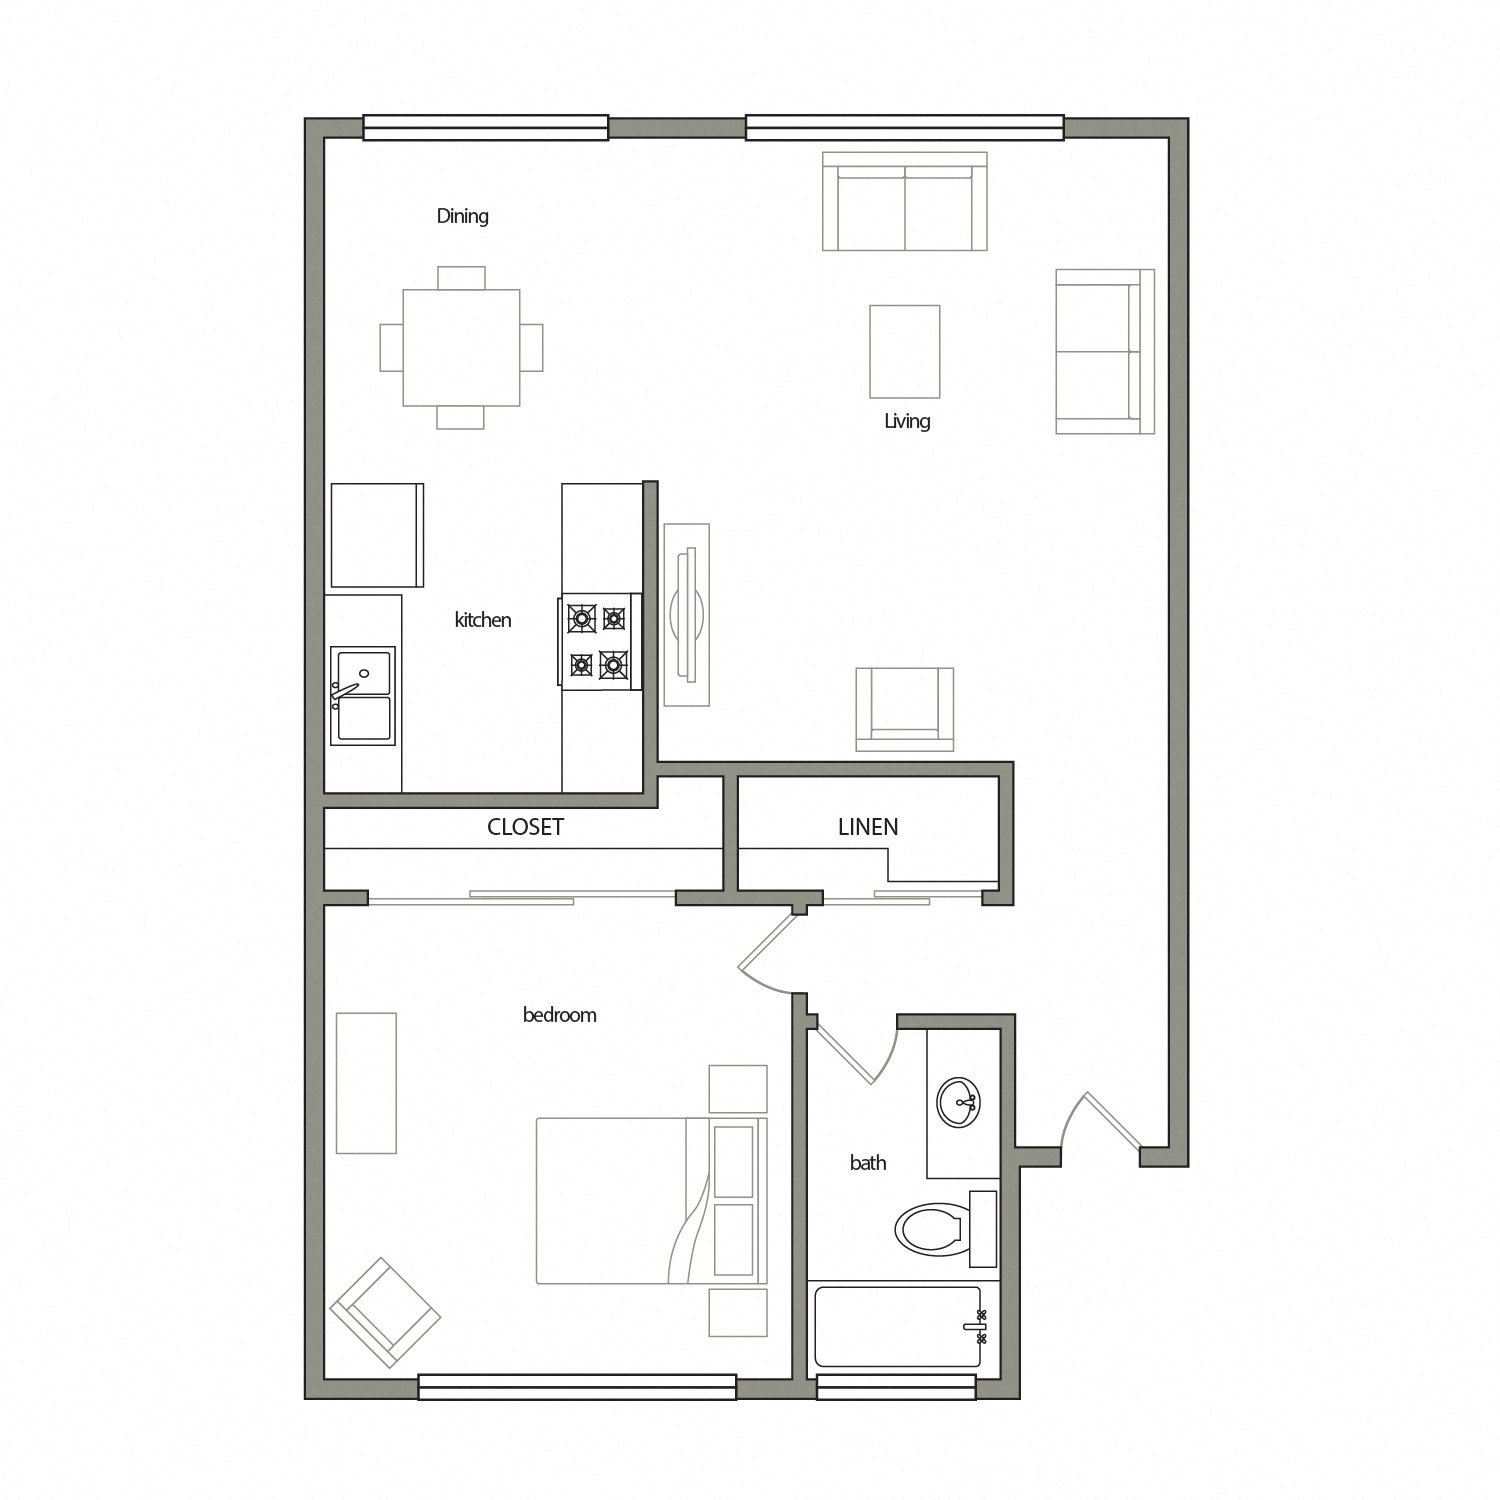 Leon floor plan diagram. One bedroom, one bathroom,  and an open kitchen dining and living area.